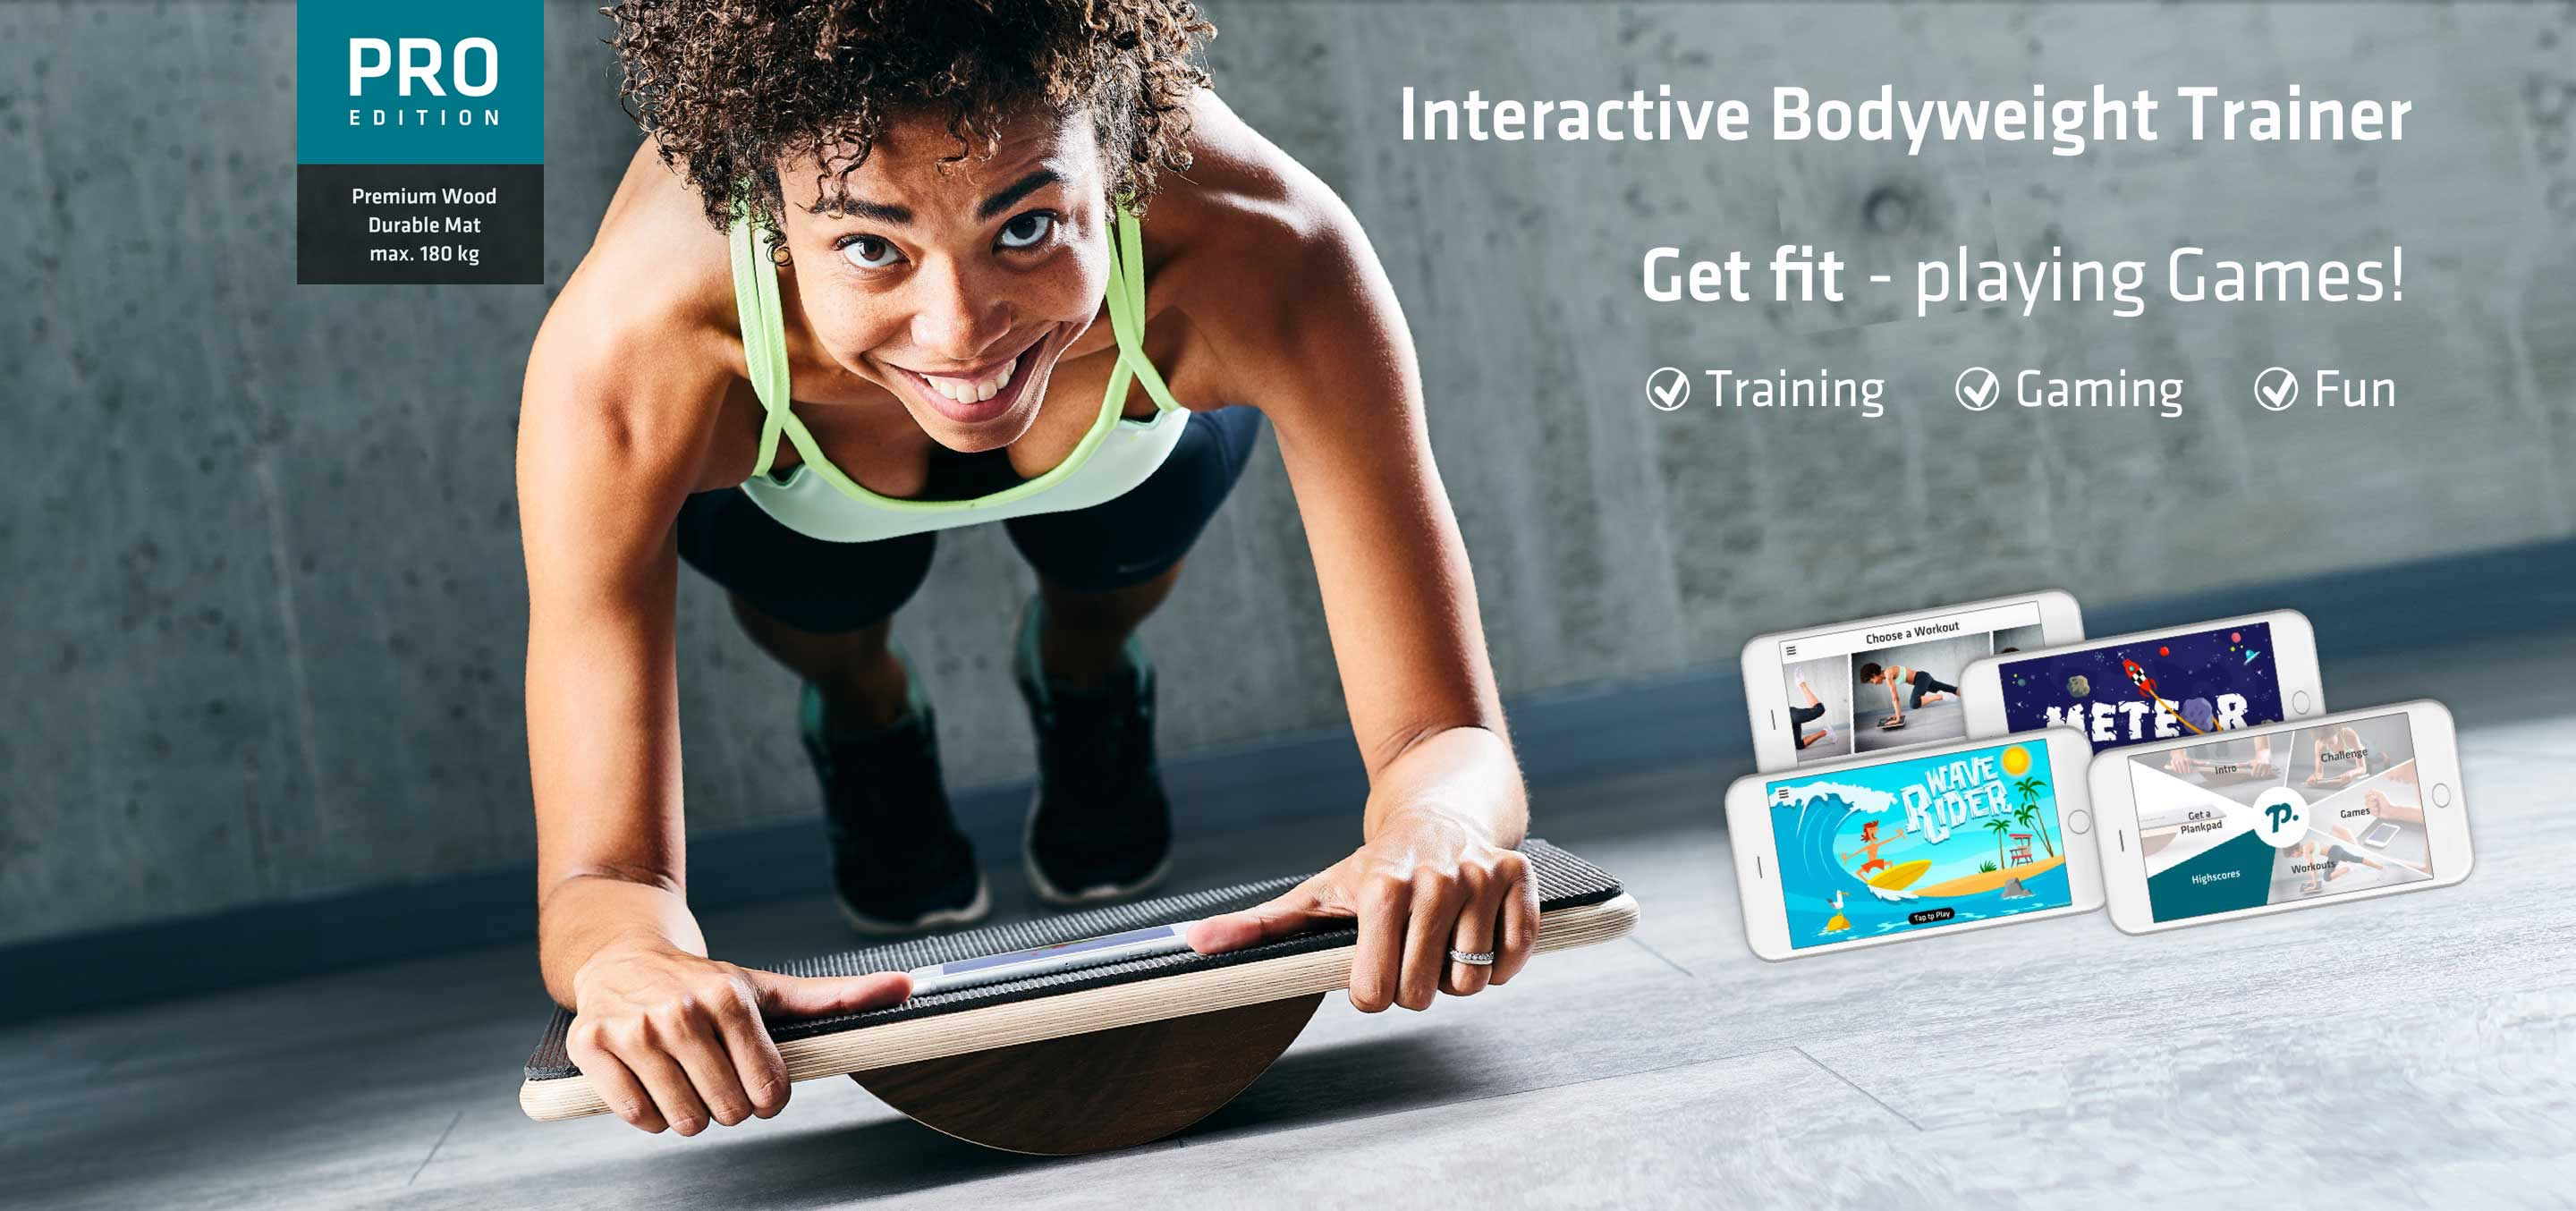 Plankpad - Interactive Bodyweight Trainer